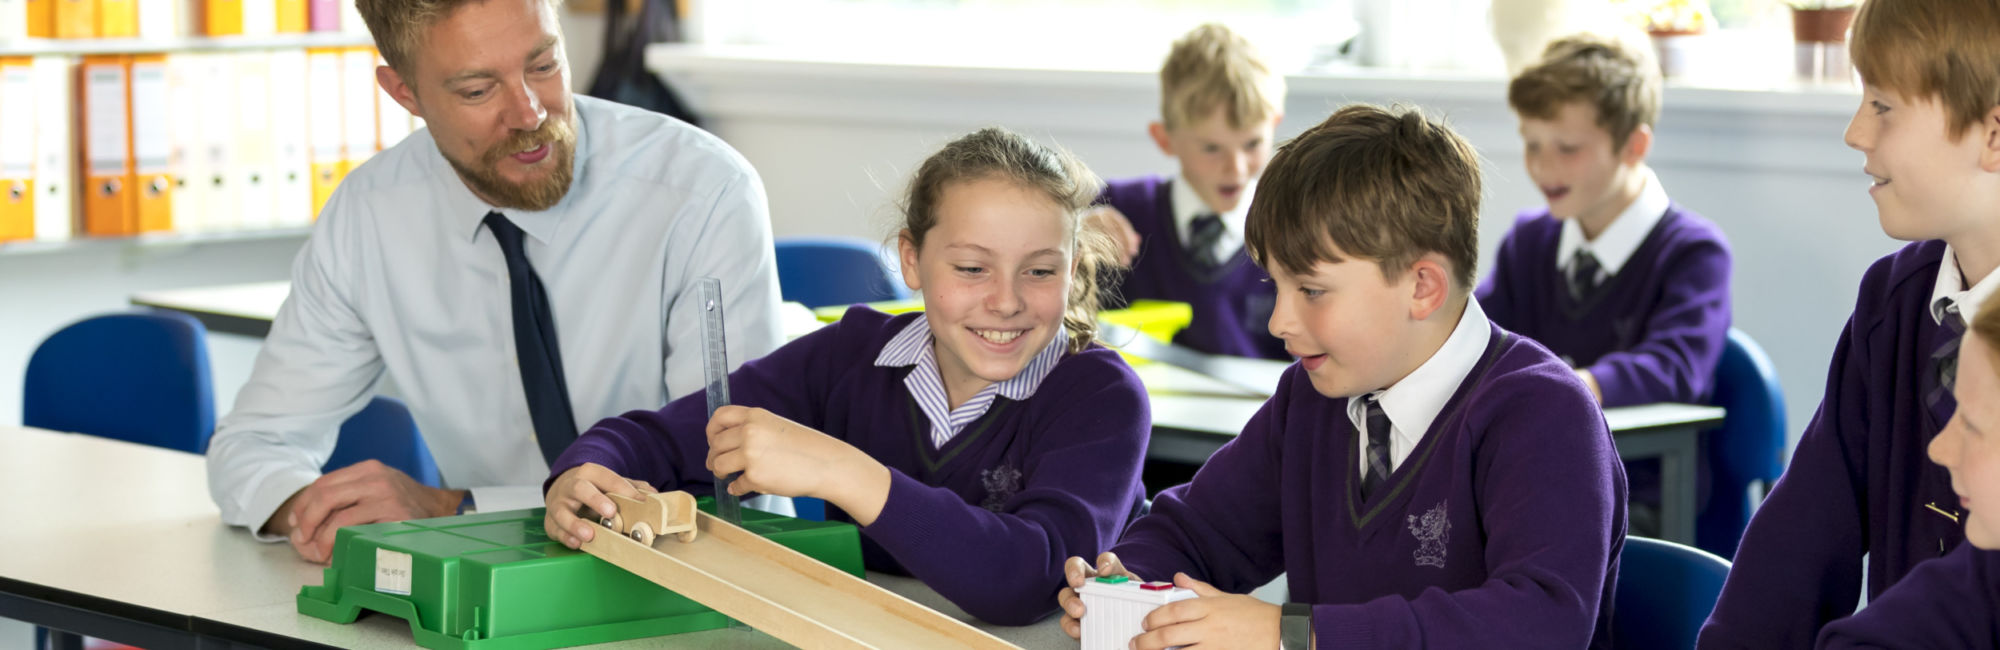 prep school offering pastoral care